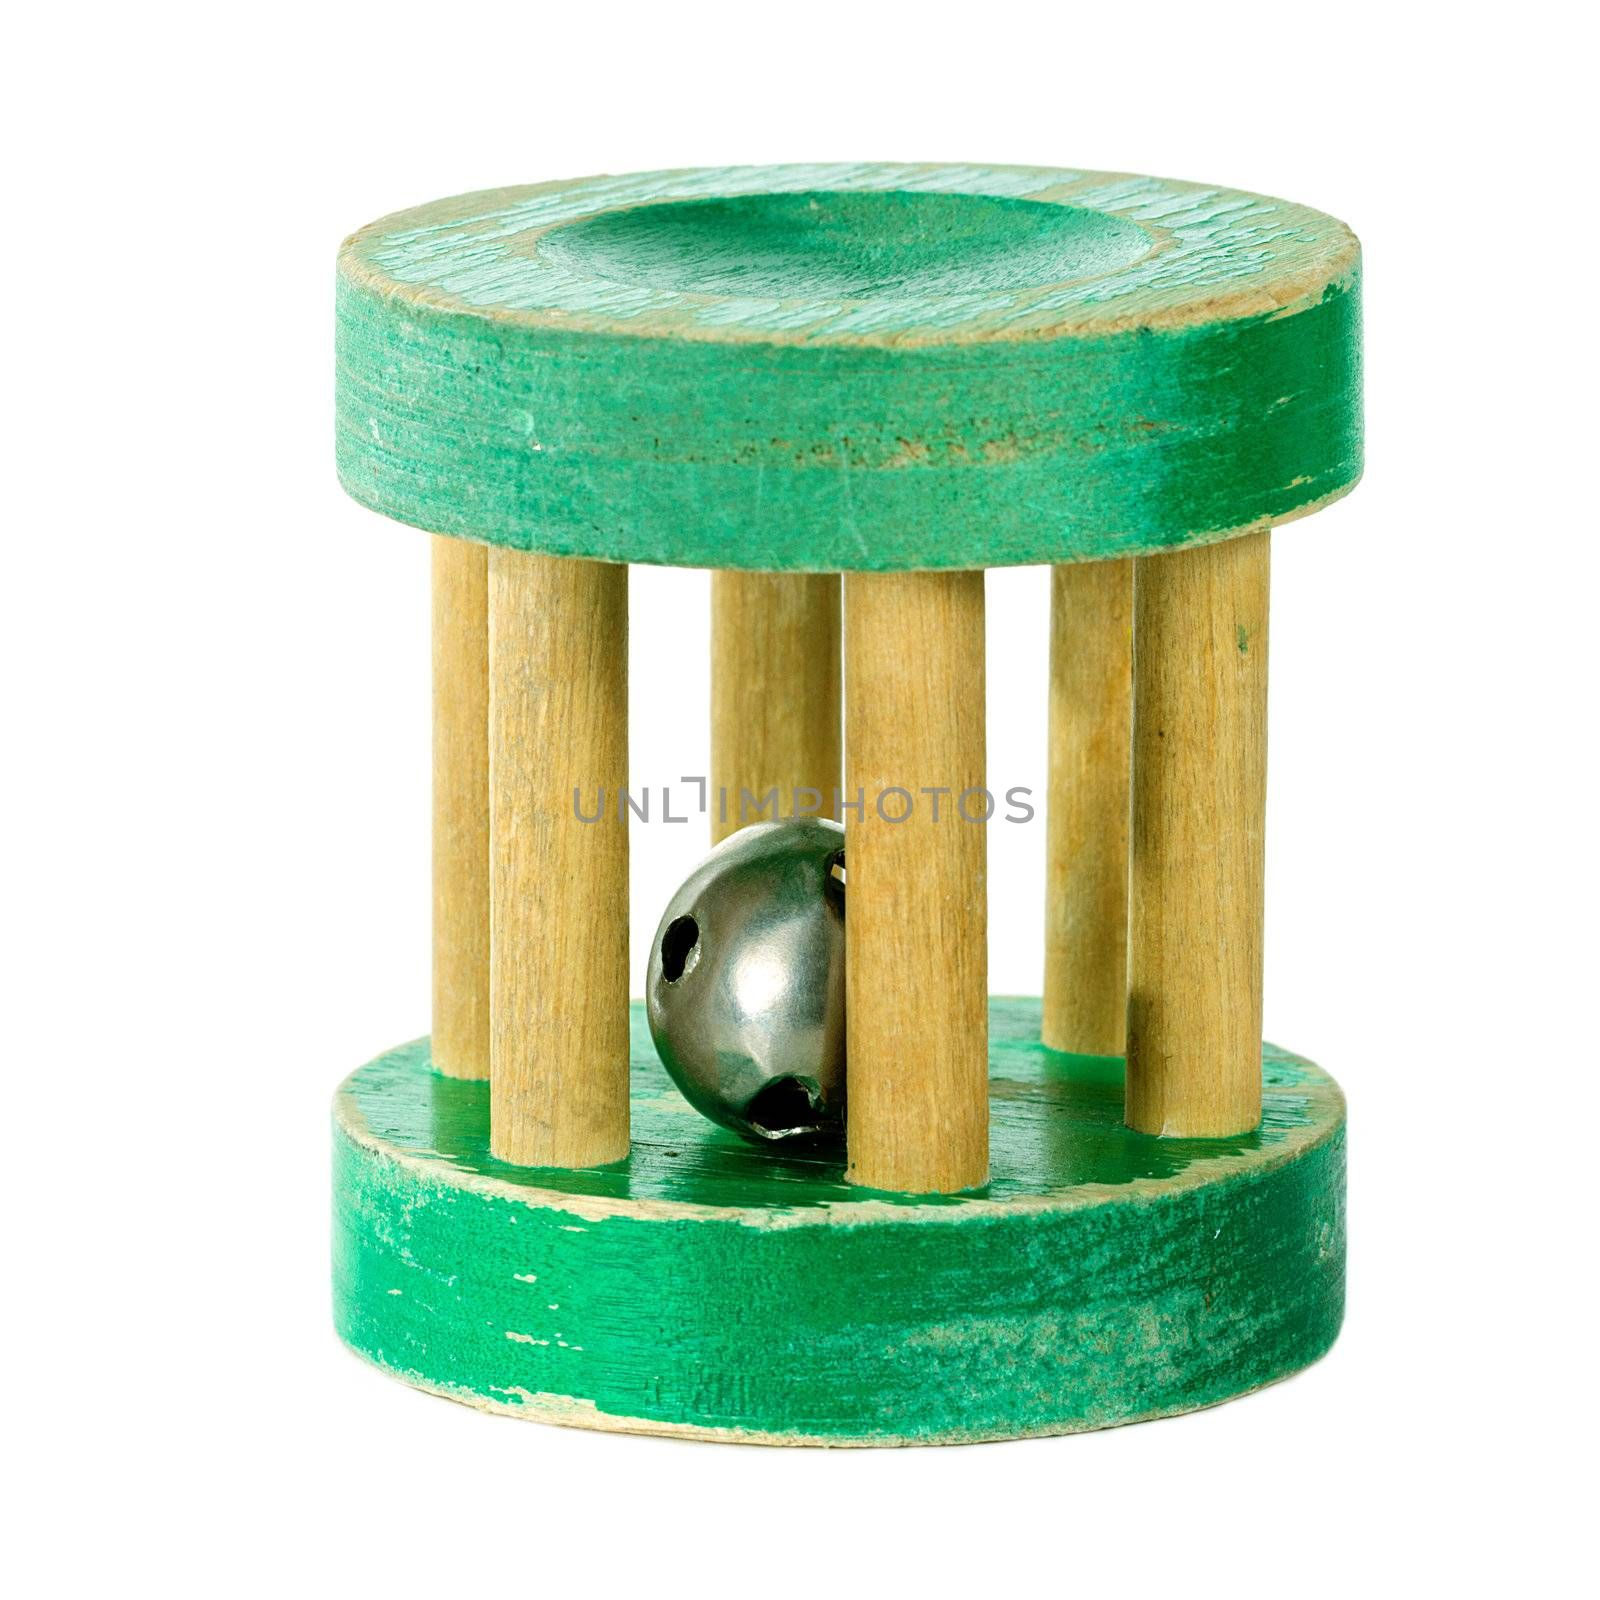 Antique wooden green rattle isolated on white